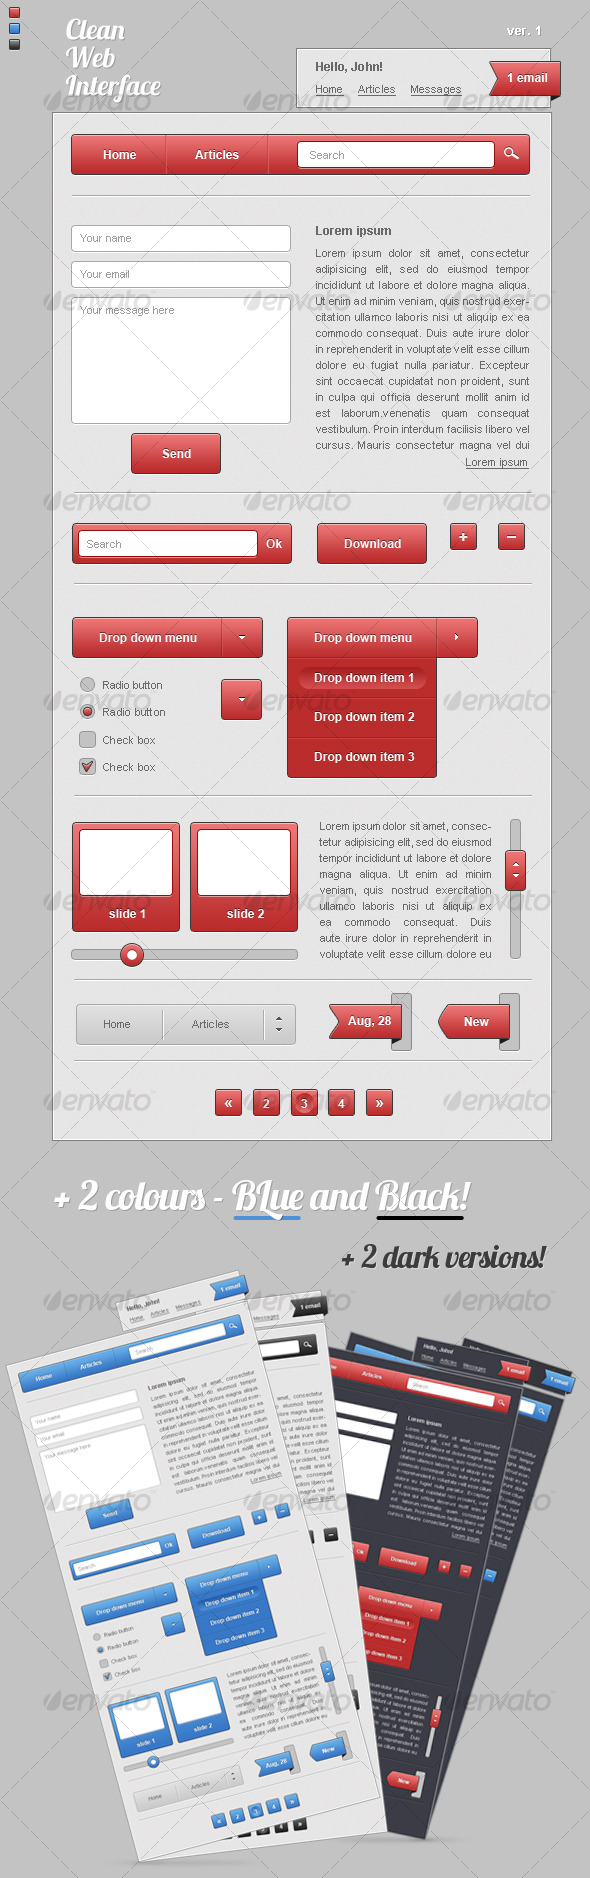 GraphicRiver Clean Web Interface 121873